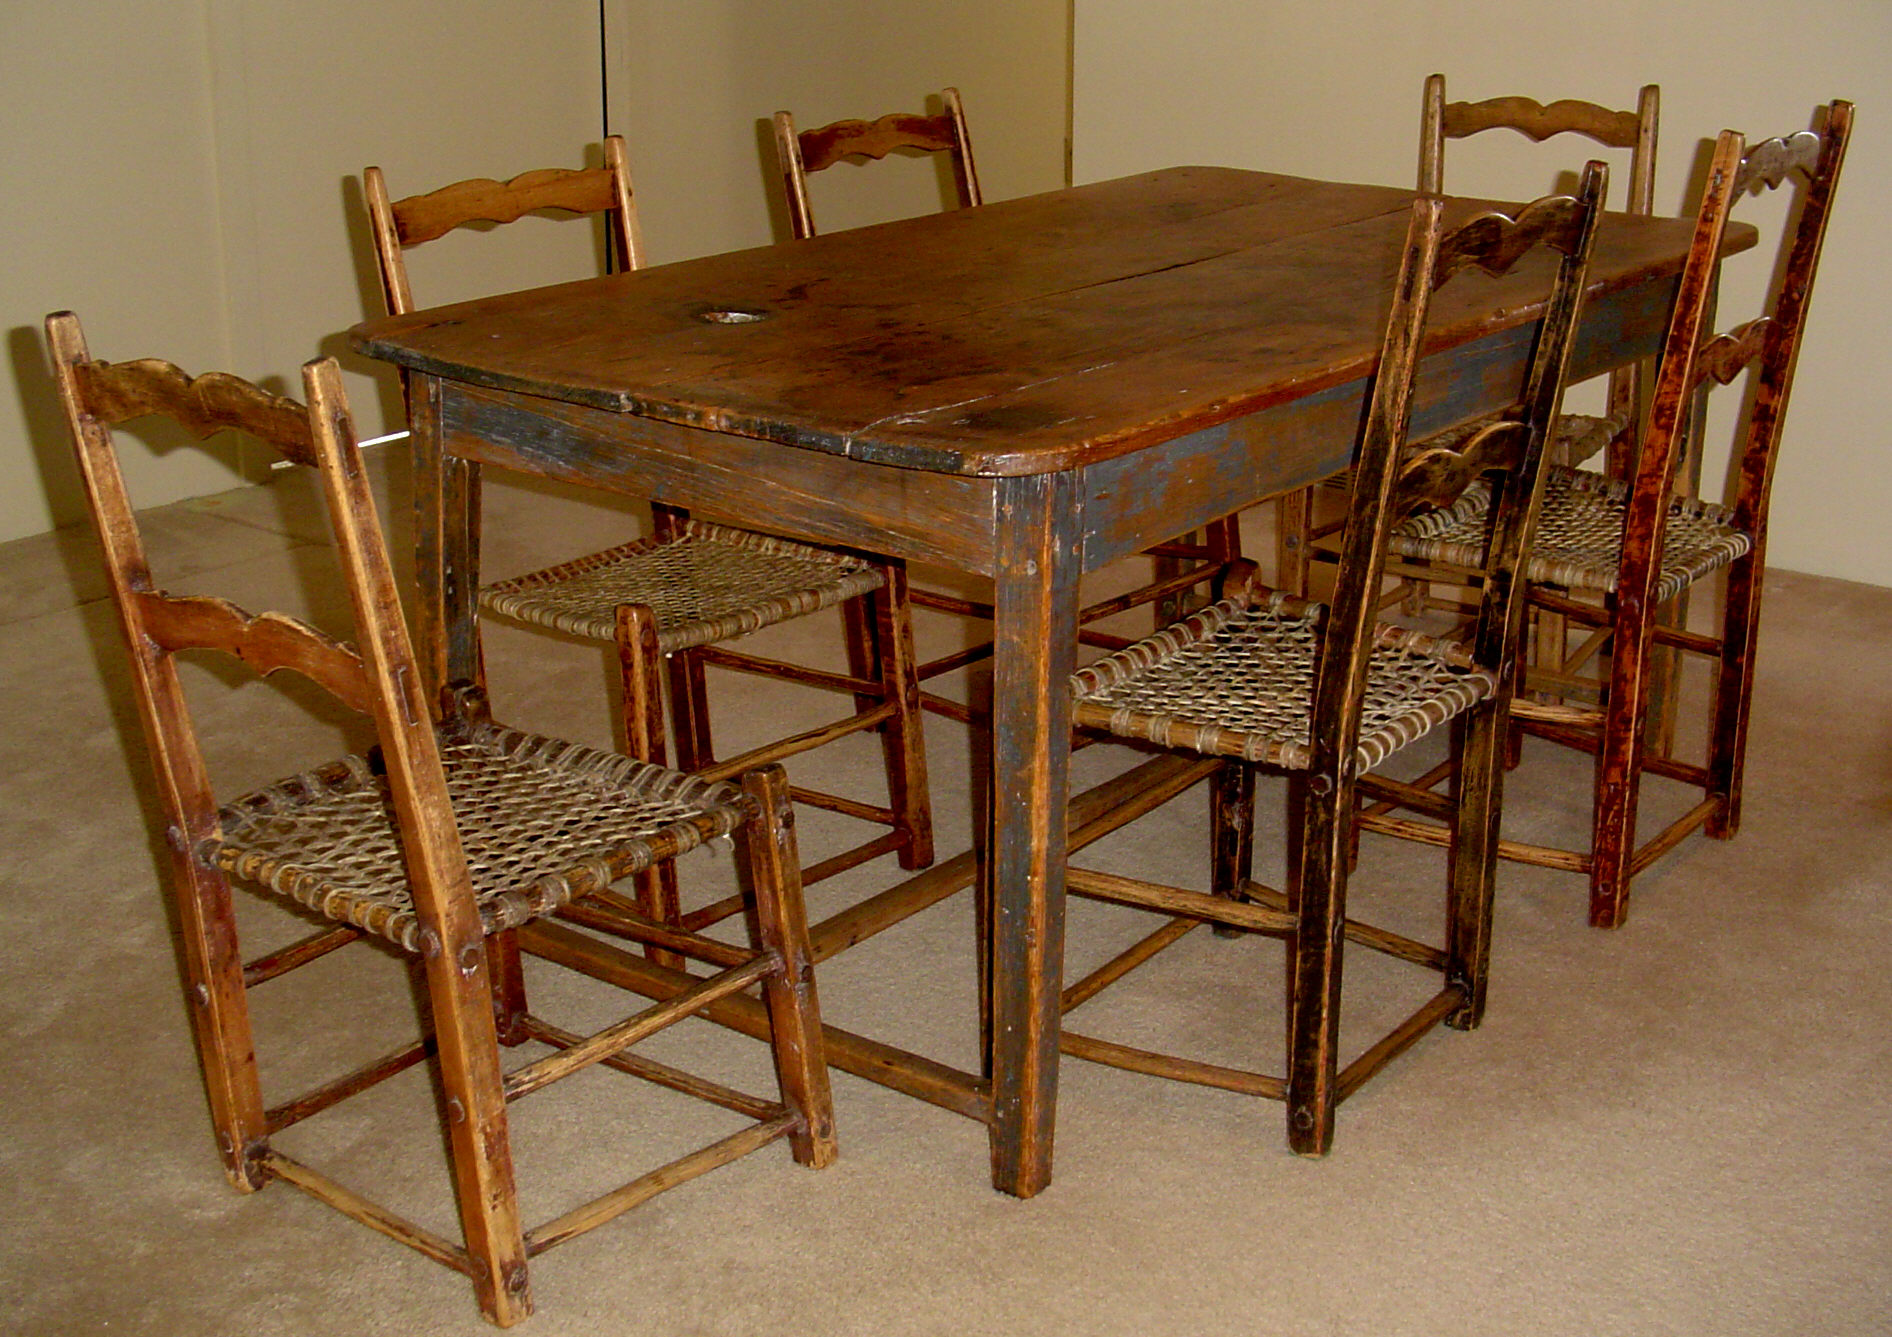 Wooden Tables For Sale Primitive Kitchen Set Canadian Pine Wood Furniture For